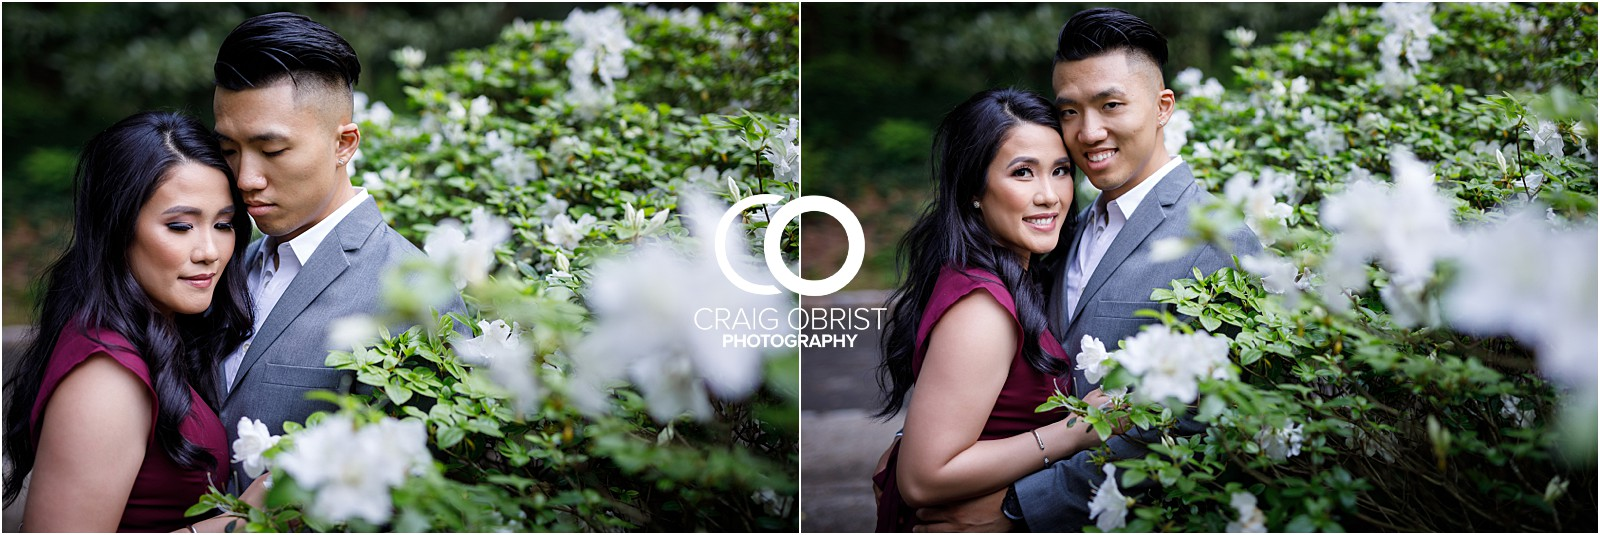 Cator Wolford gardens Downtown Duluth Engagement Portraits_0017.jpg